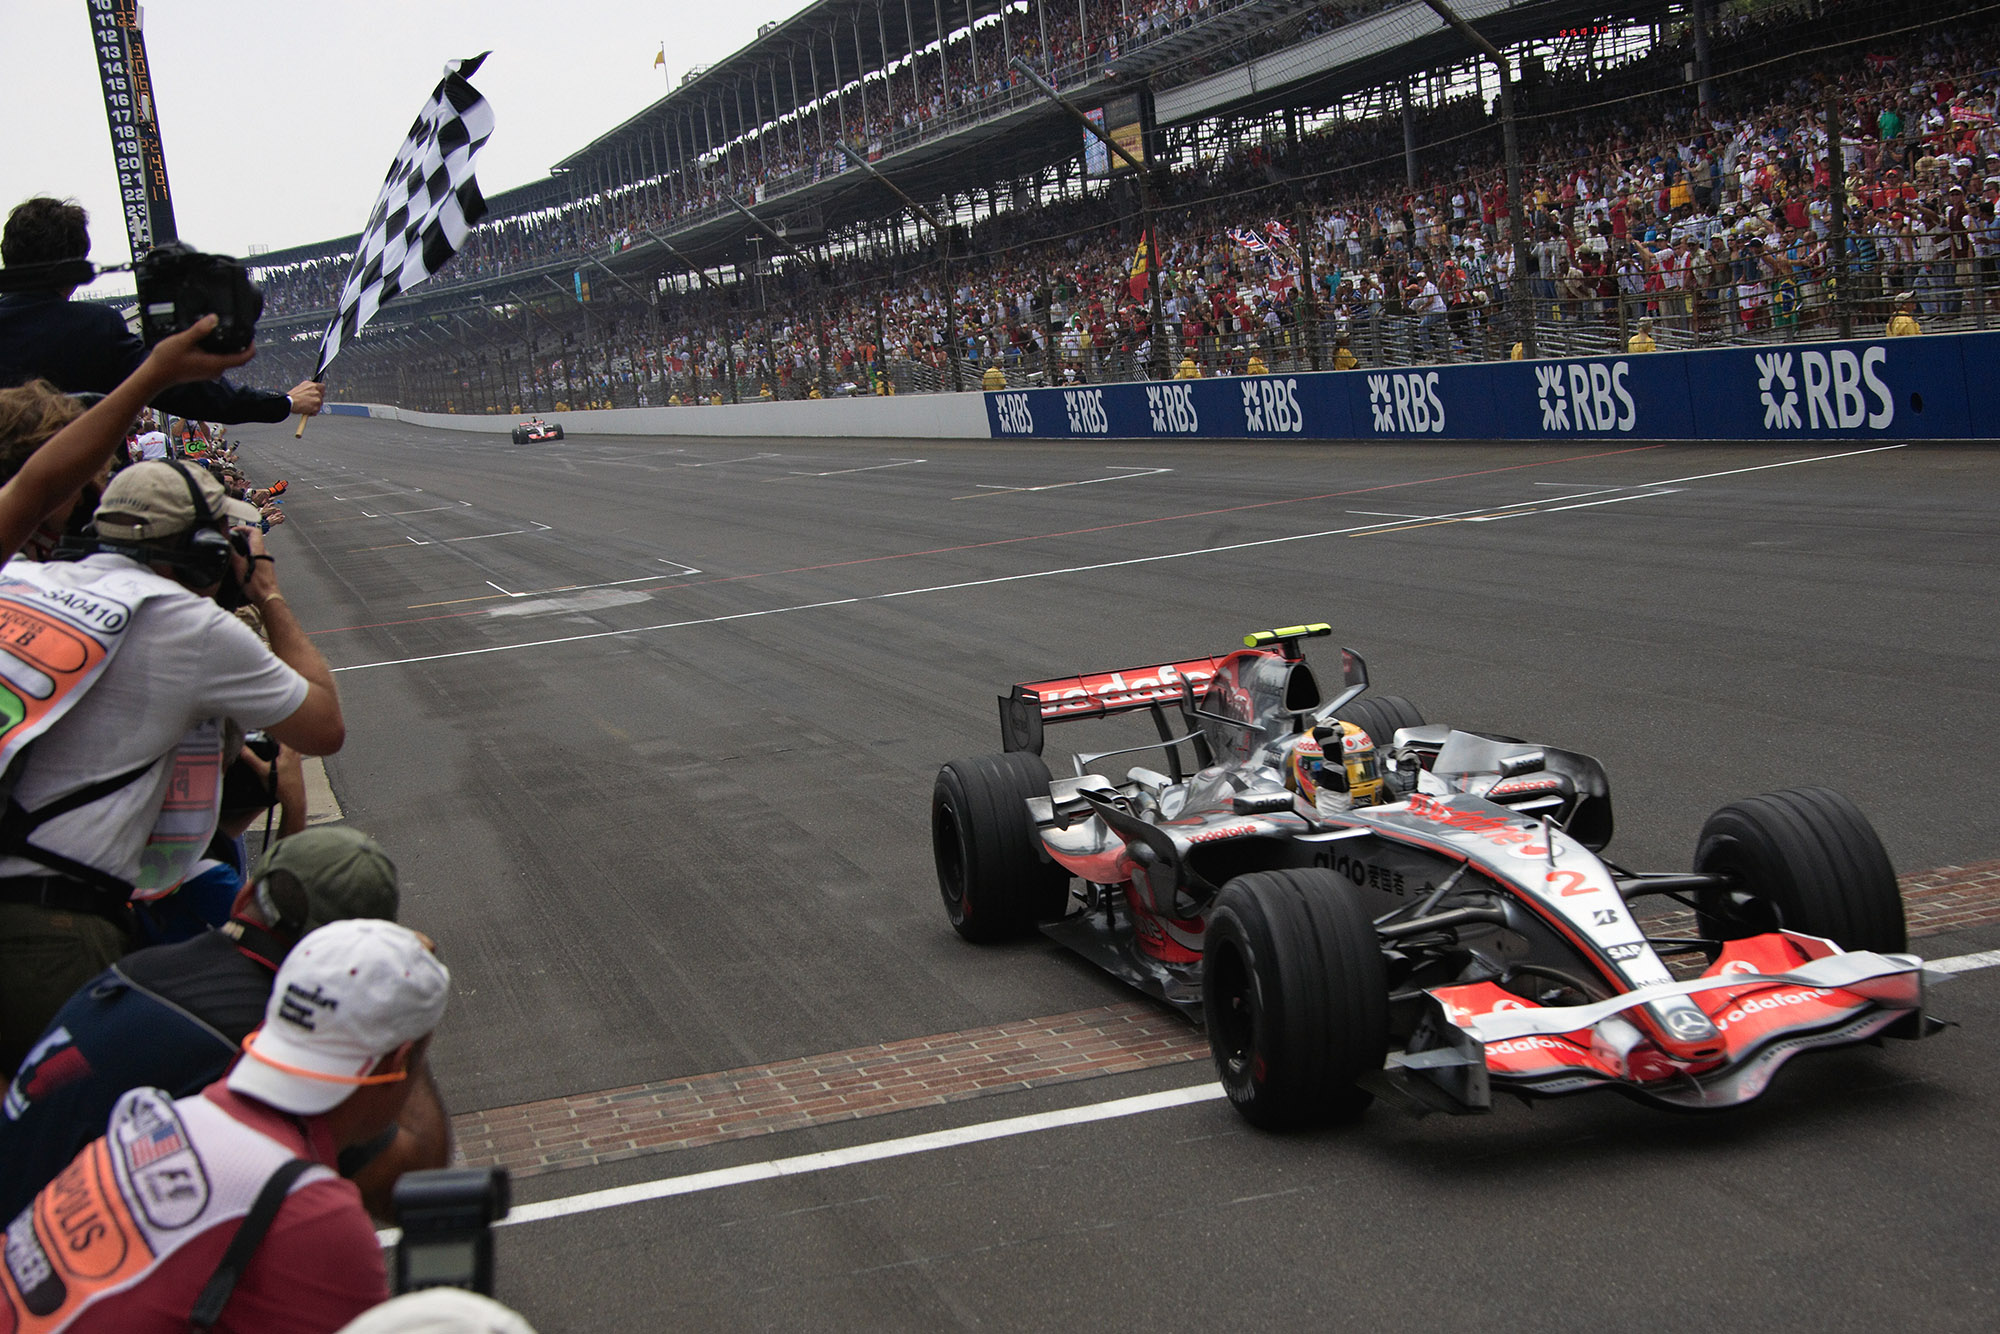 Lewis Hamilton crosses the brick-lined finish line to win the 2007 US Grand Prix at Indianapolis